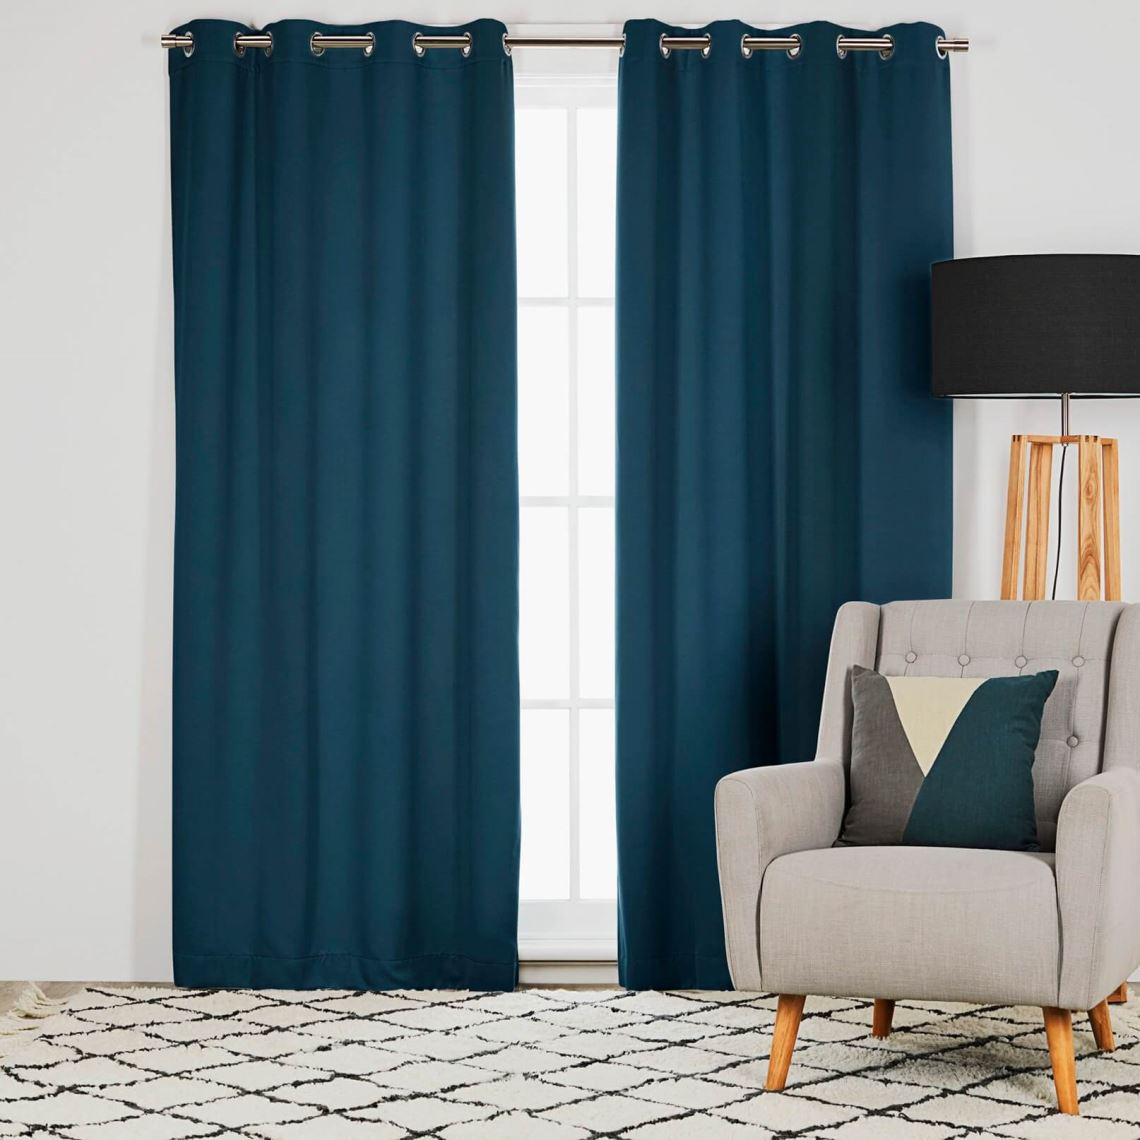 Barlow Room Darkening Eyelet Curtain Size W 135cm x D 0cm x H 230cm in Peacock 100% Polyester/Acrylic Flock Coating/Stainless Steel Freedom by Freedom, a Curtains for sale on Style Sourcebook